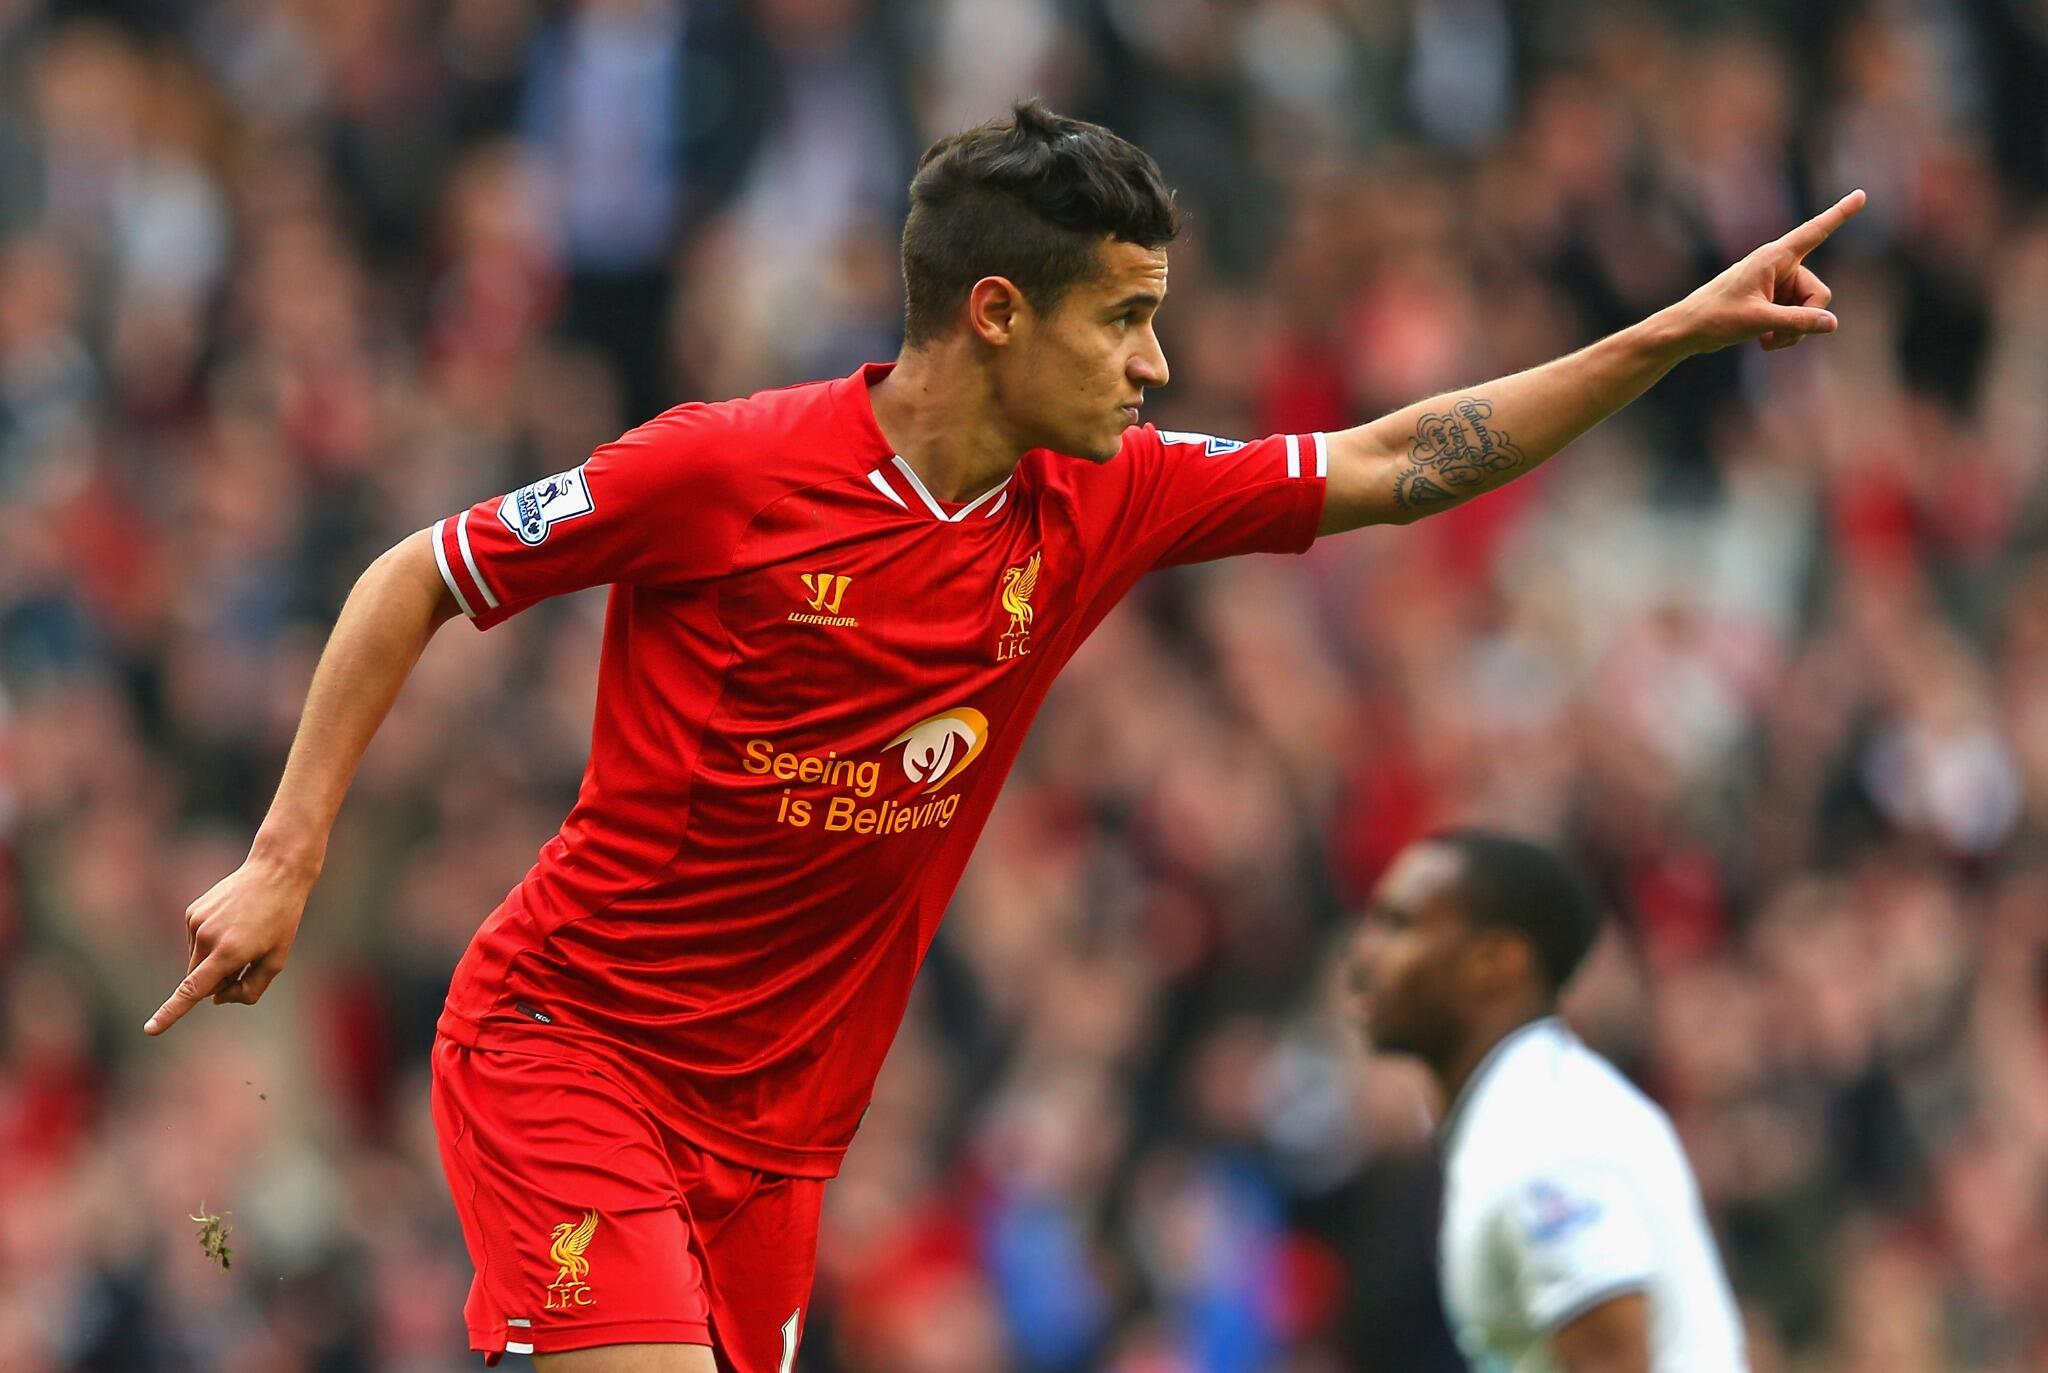 PHOTO: A well-earned celebration for @Phil_Coutinho http://t.co/mxeawGBj6f